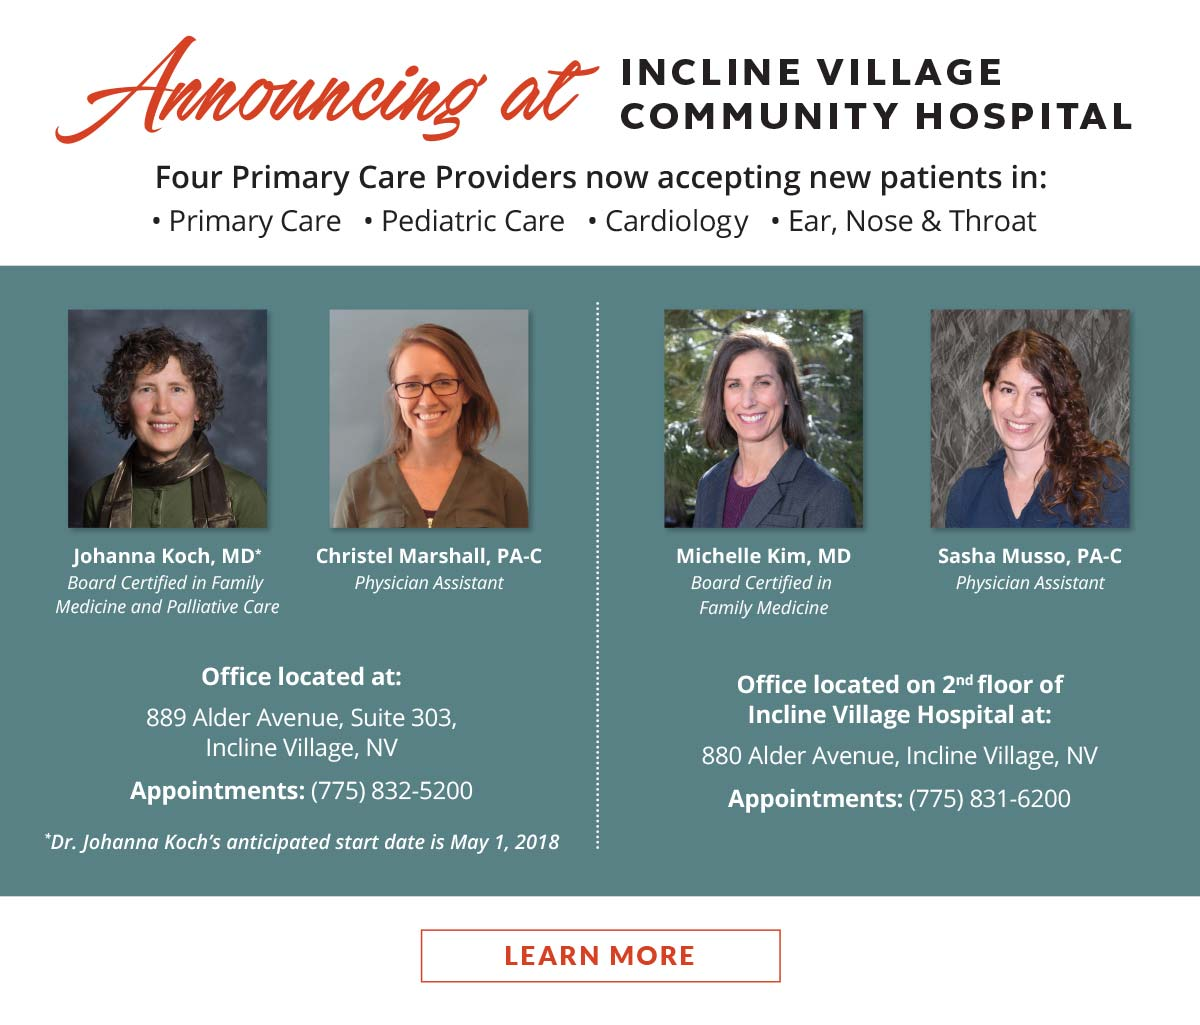 Incline Village Community Hospital staff